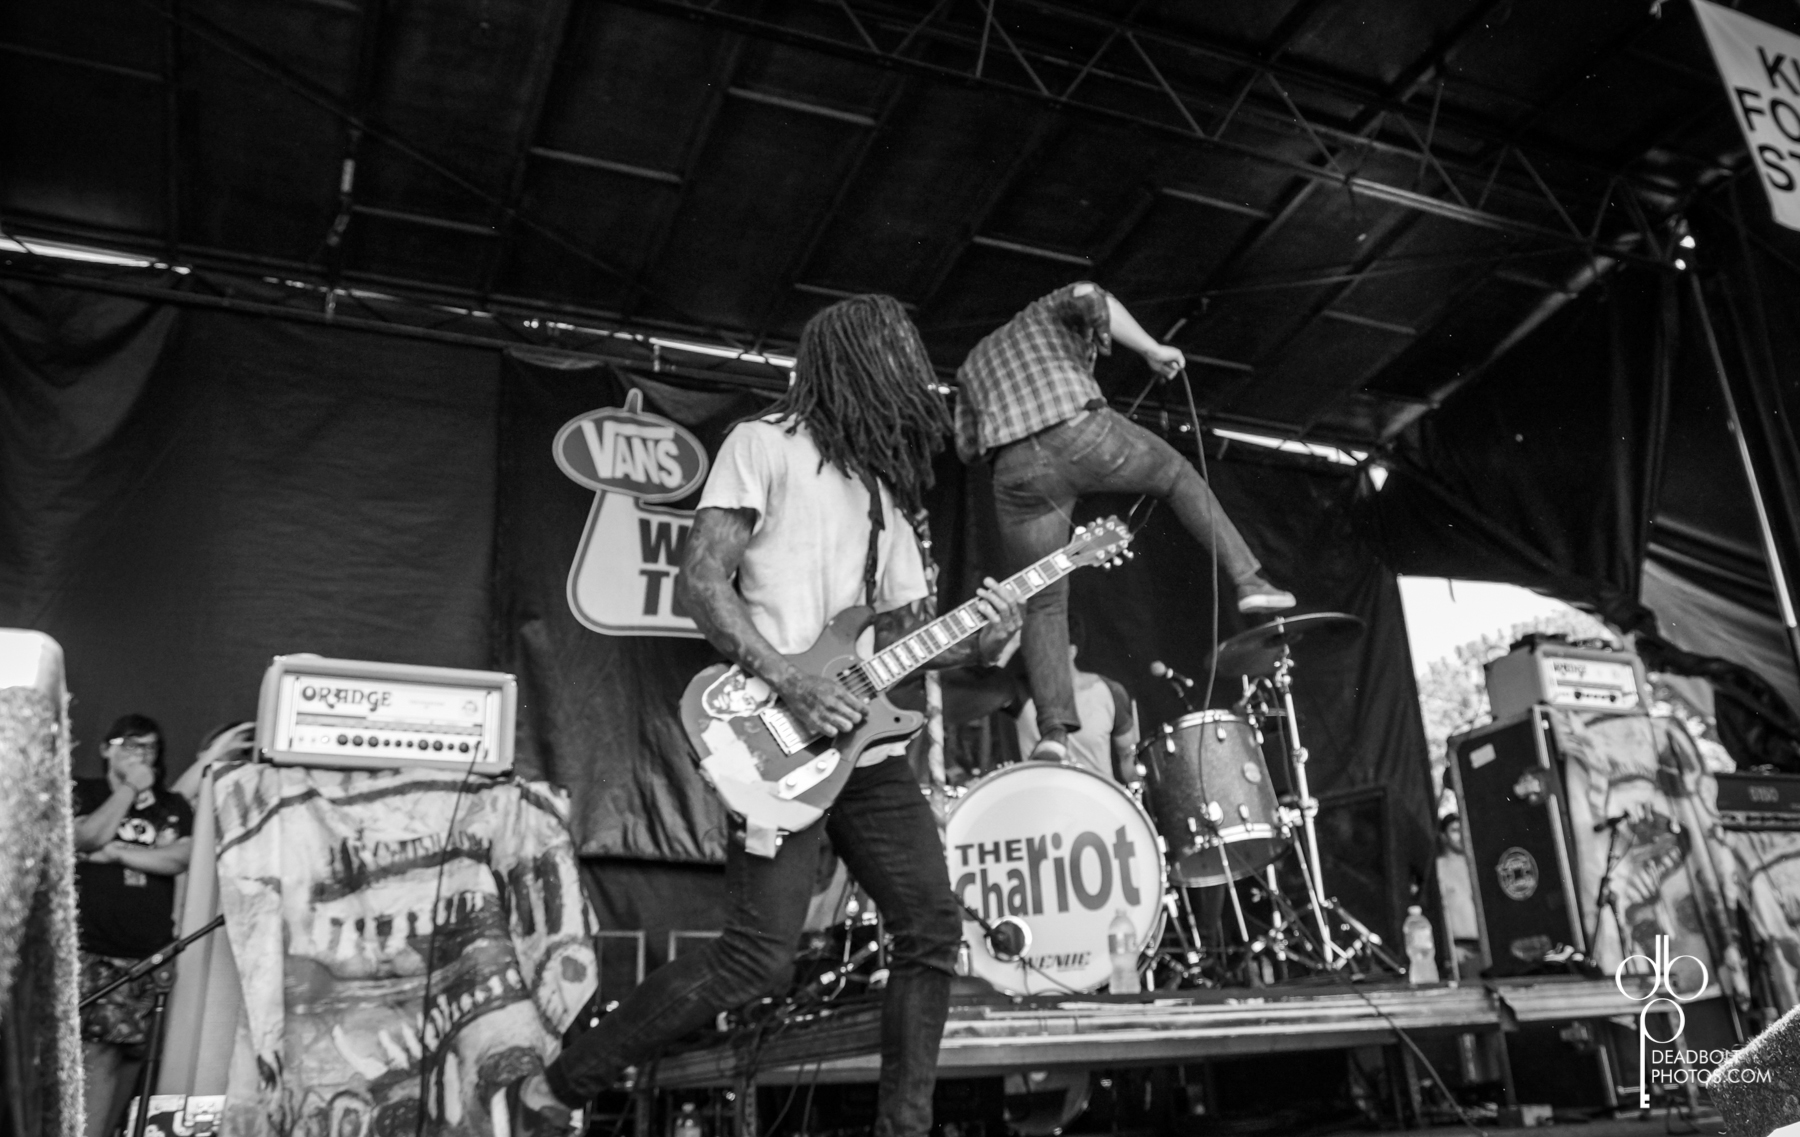 The Chariot at Vans Warped Tour 2013.